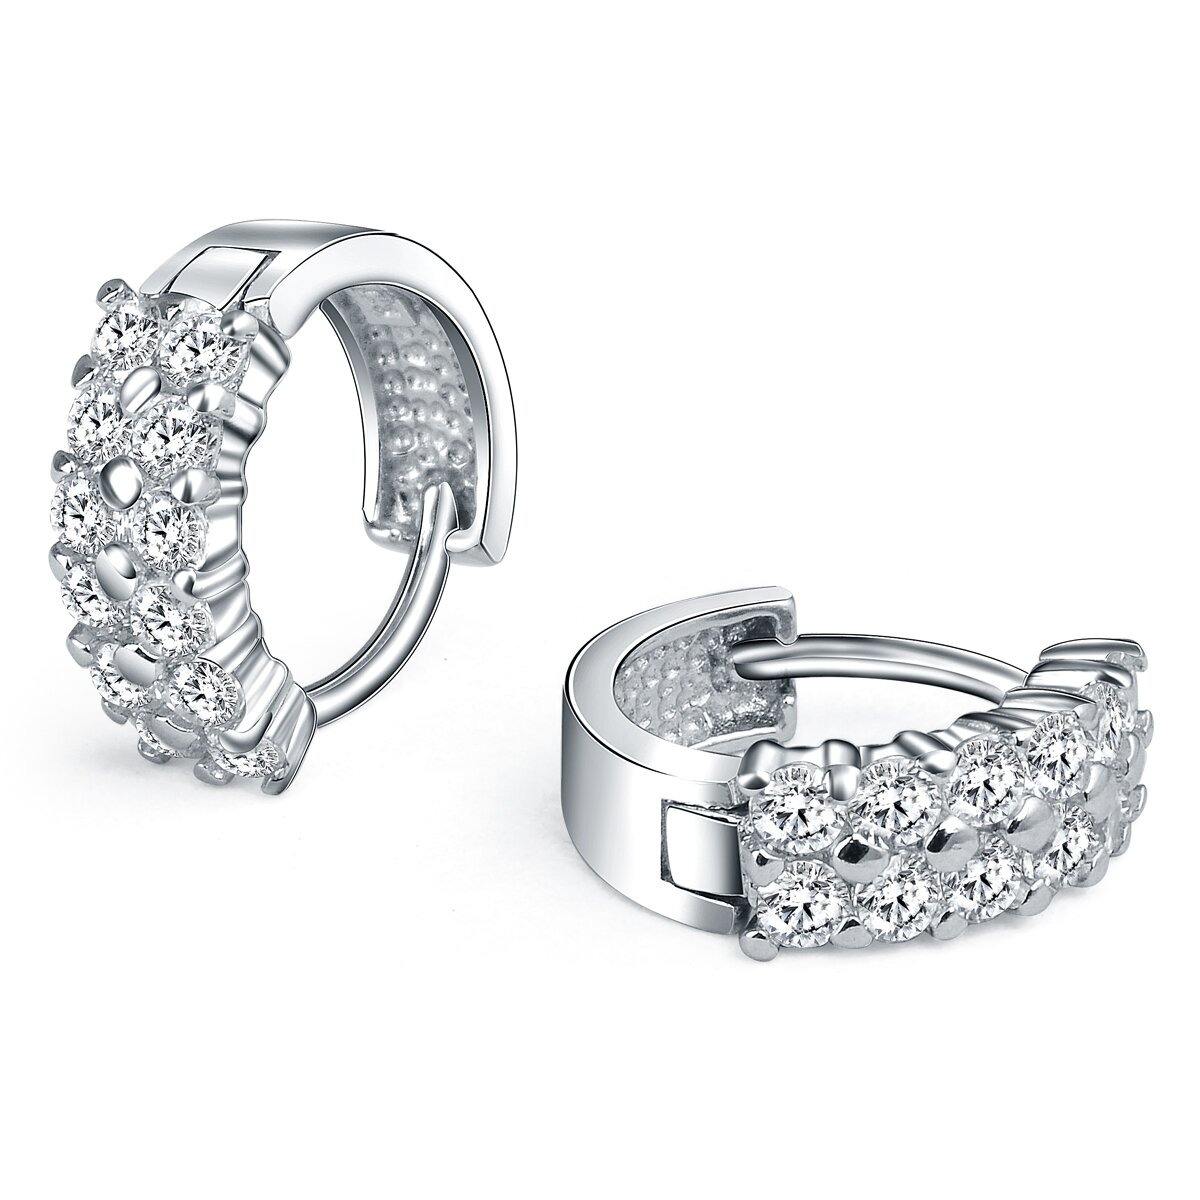 Diamond Earrings Designs 1